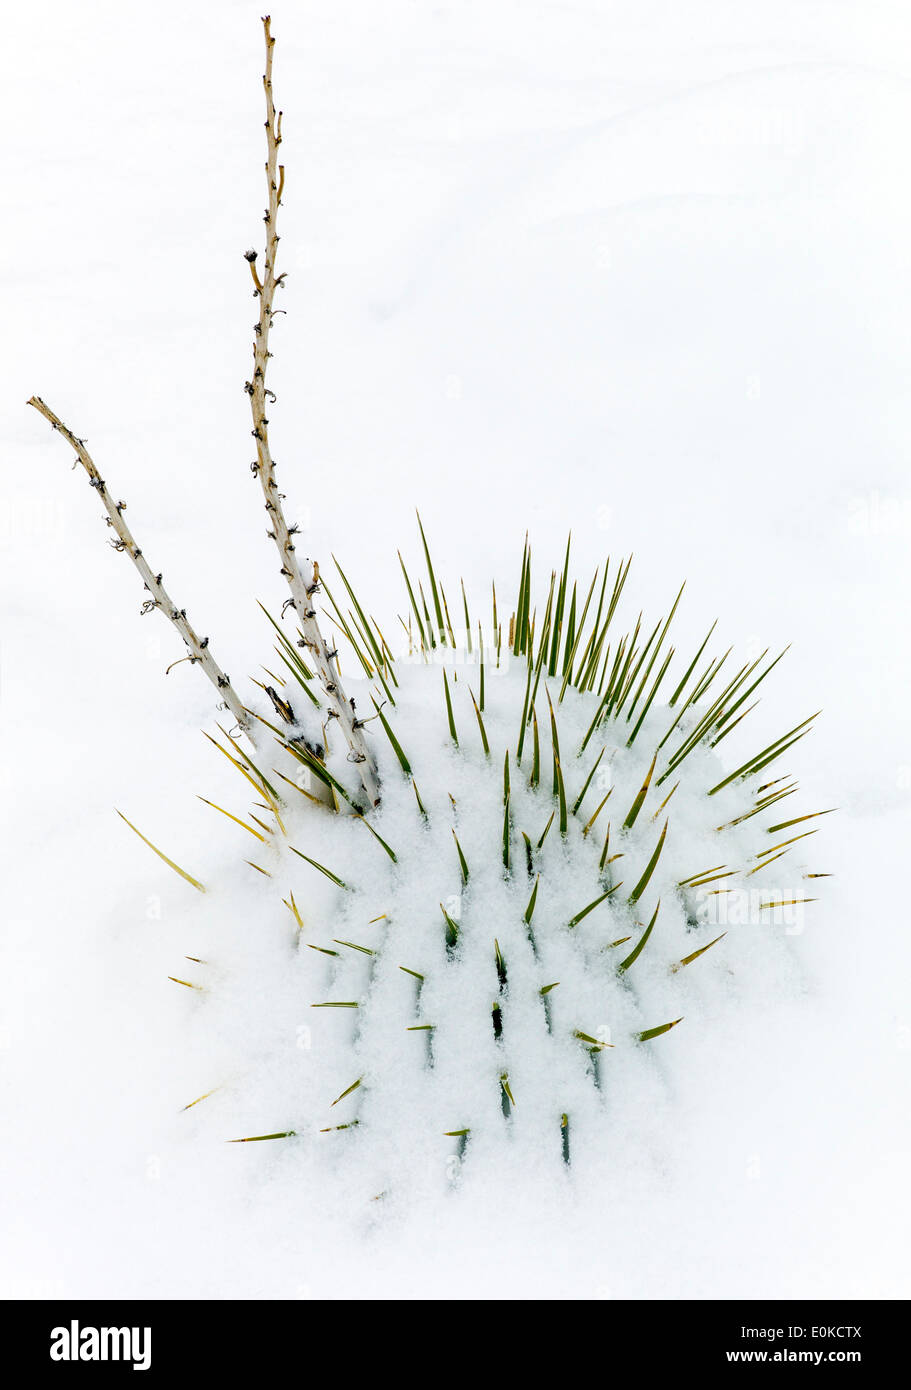 Yucca plant, springtime snow in the Rocky Mountains near Salida, Colorado, USA Stock Photo